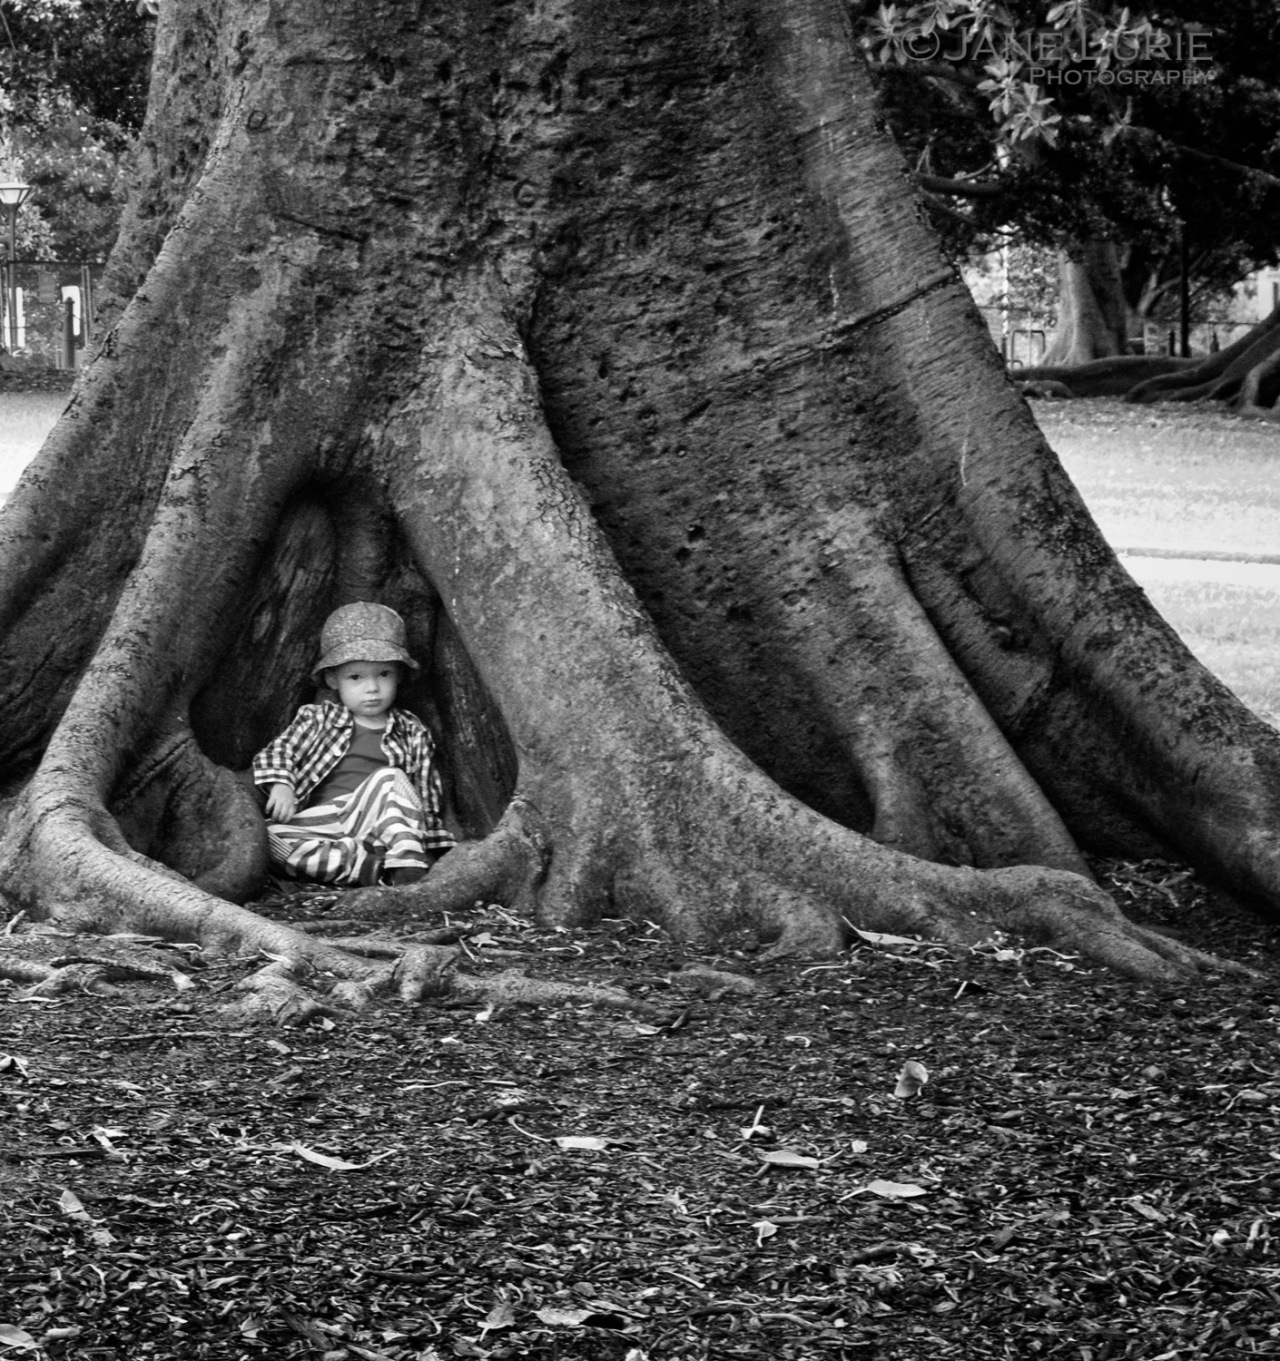 Portrait, Sydney, Fig Tree, Nature, Black and White